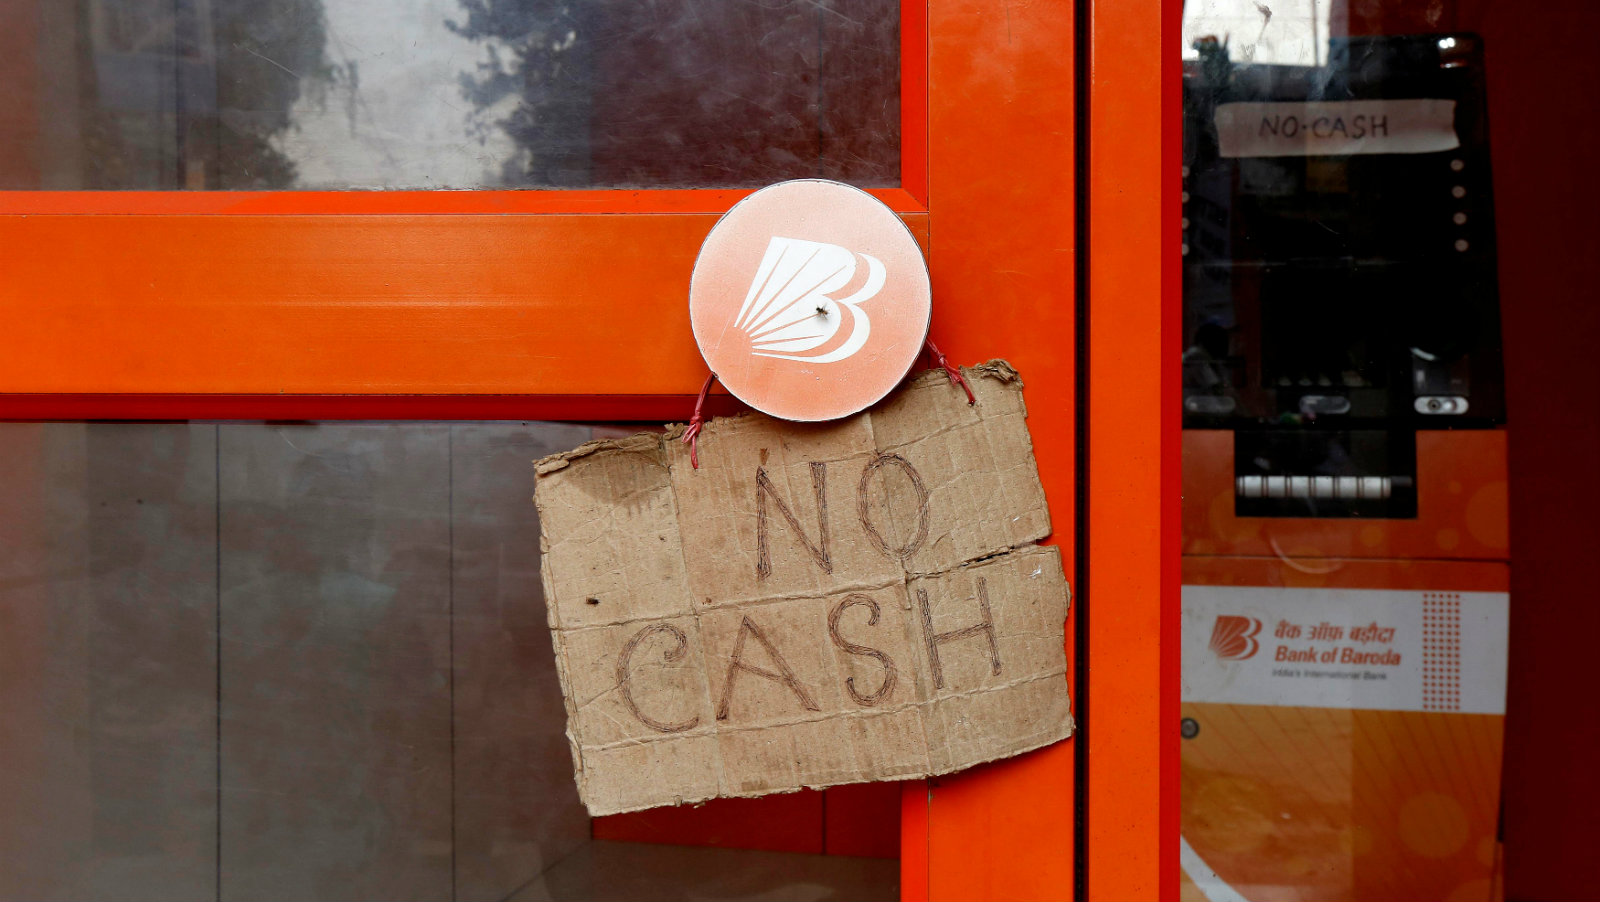 A notice is displayed outside an ATM counter in Kolkata